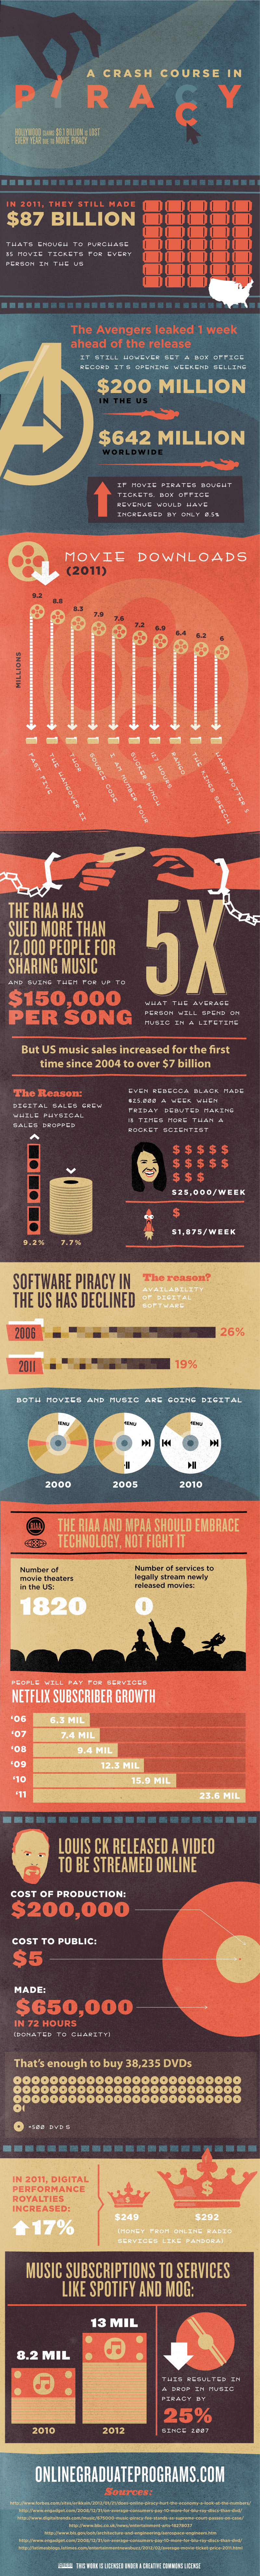 Music, Movies, Programs &#038; Piracy